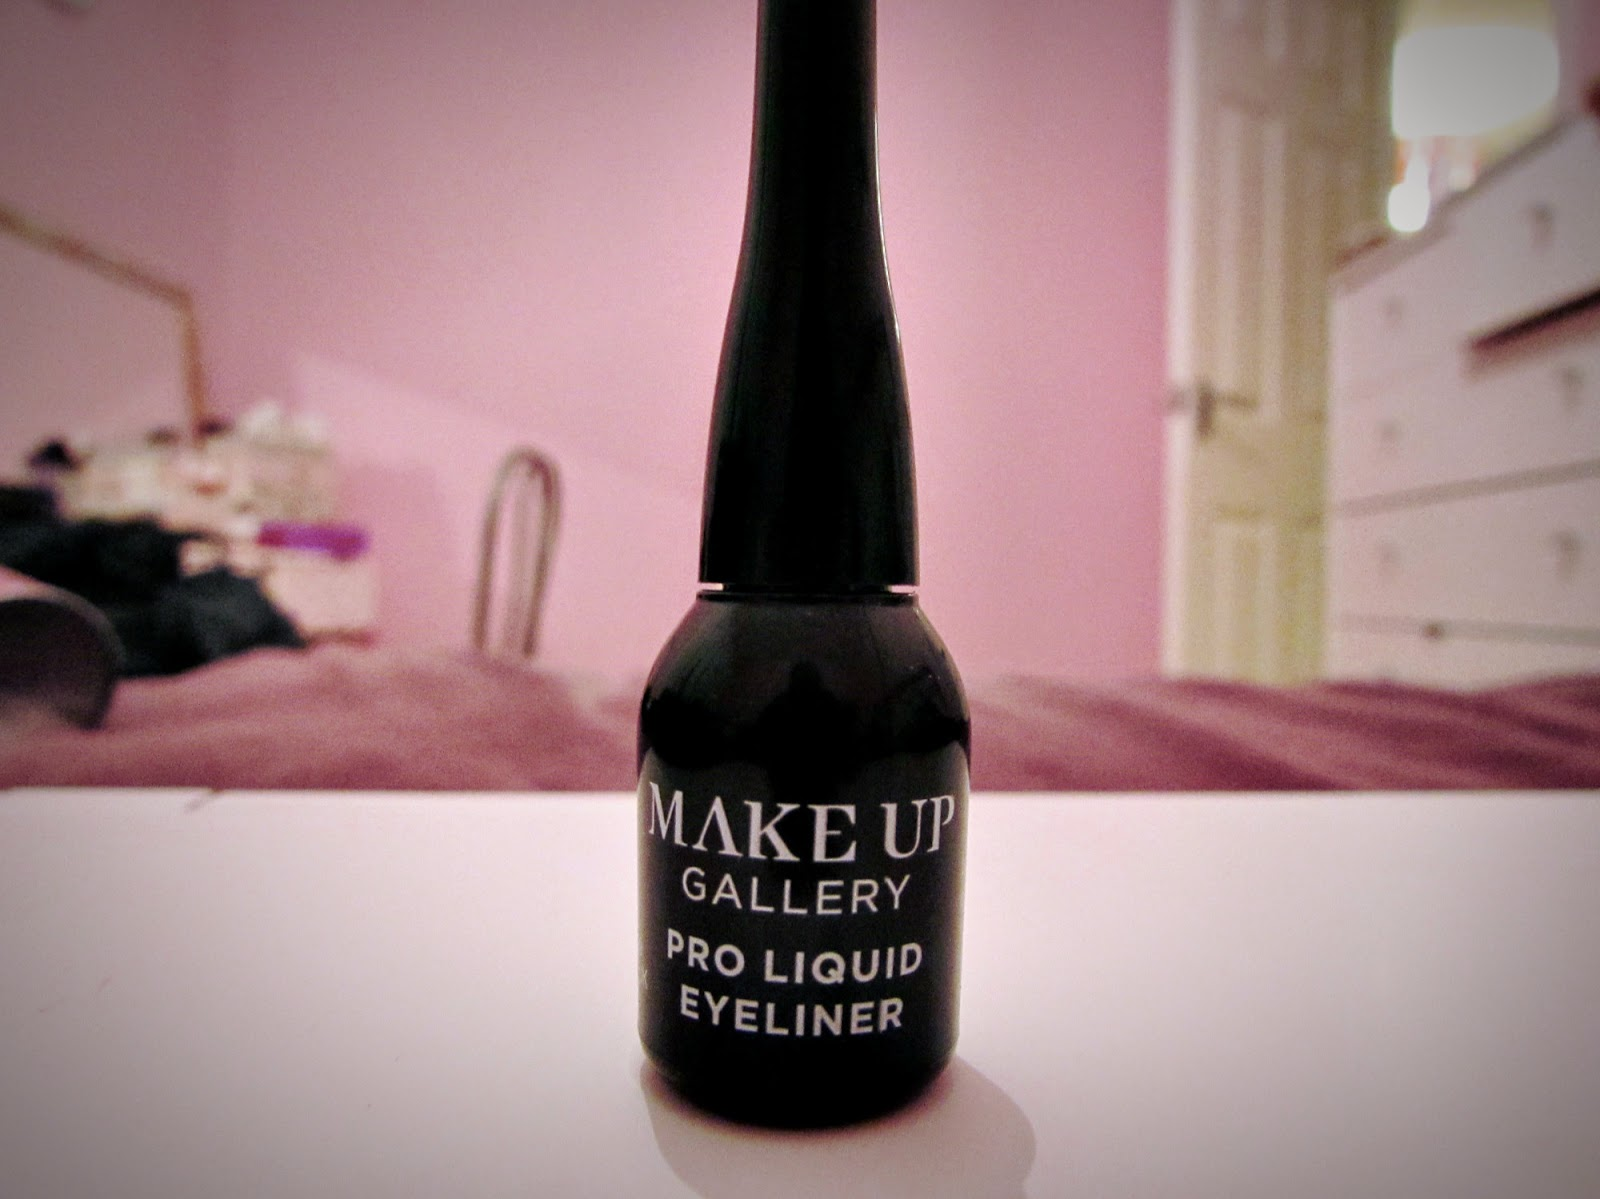 Poundland Makeup Gallery Liquid Eyeliner review